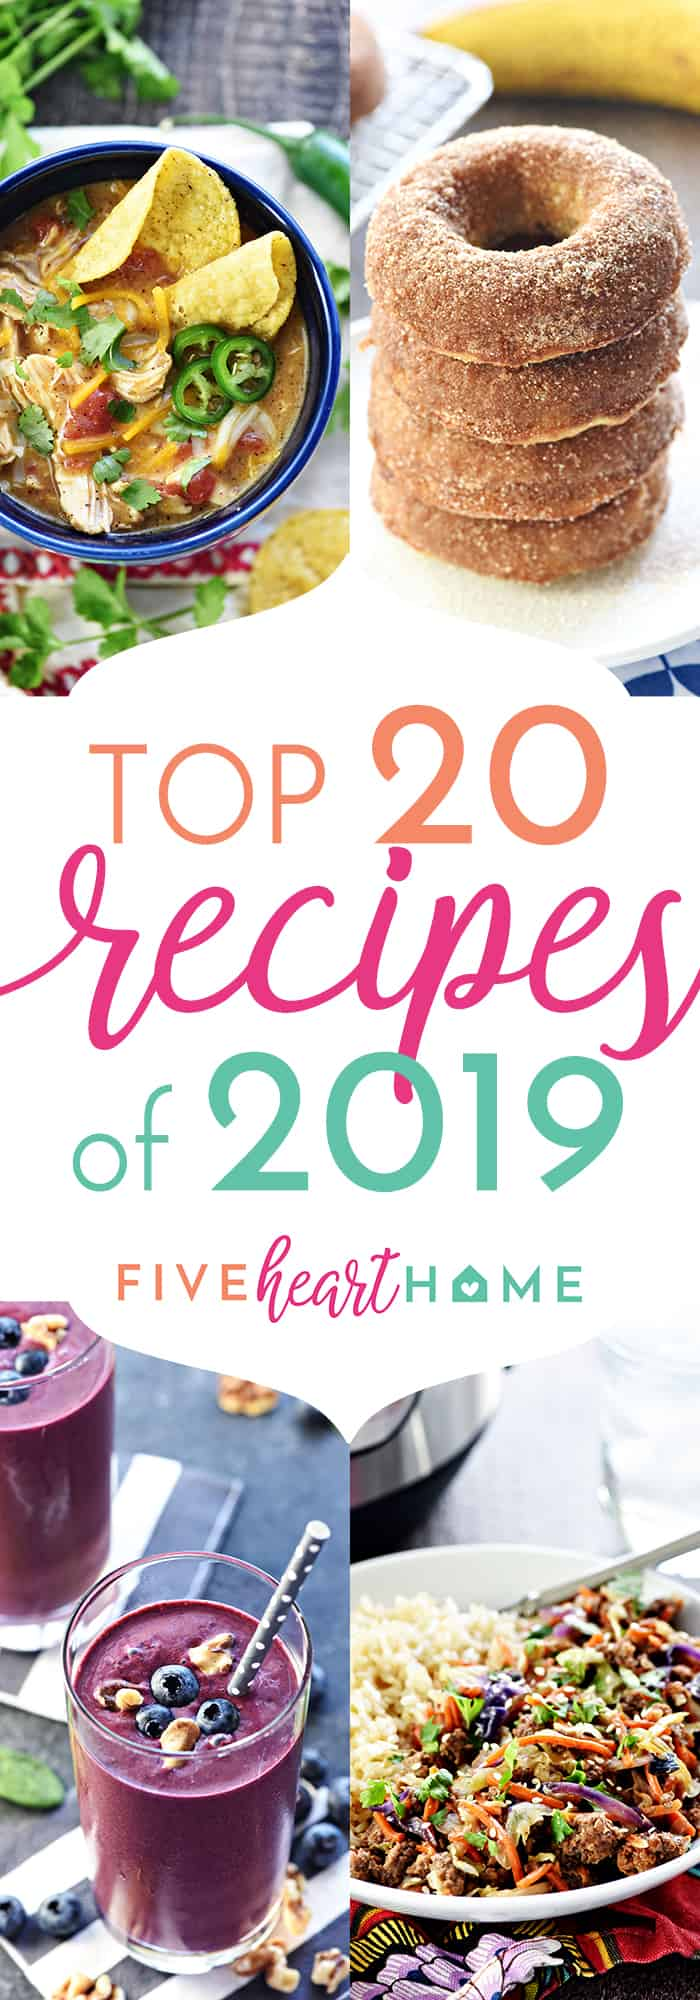 Five Heart Home Top 20 Recipes of 2019 Collage